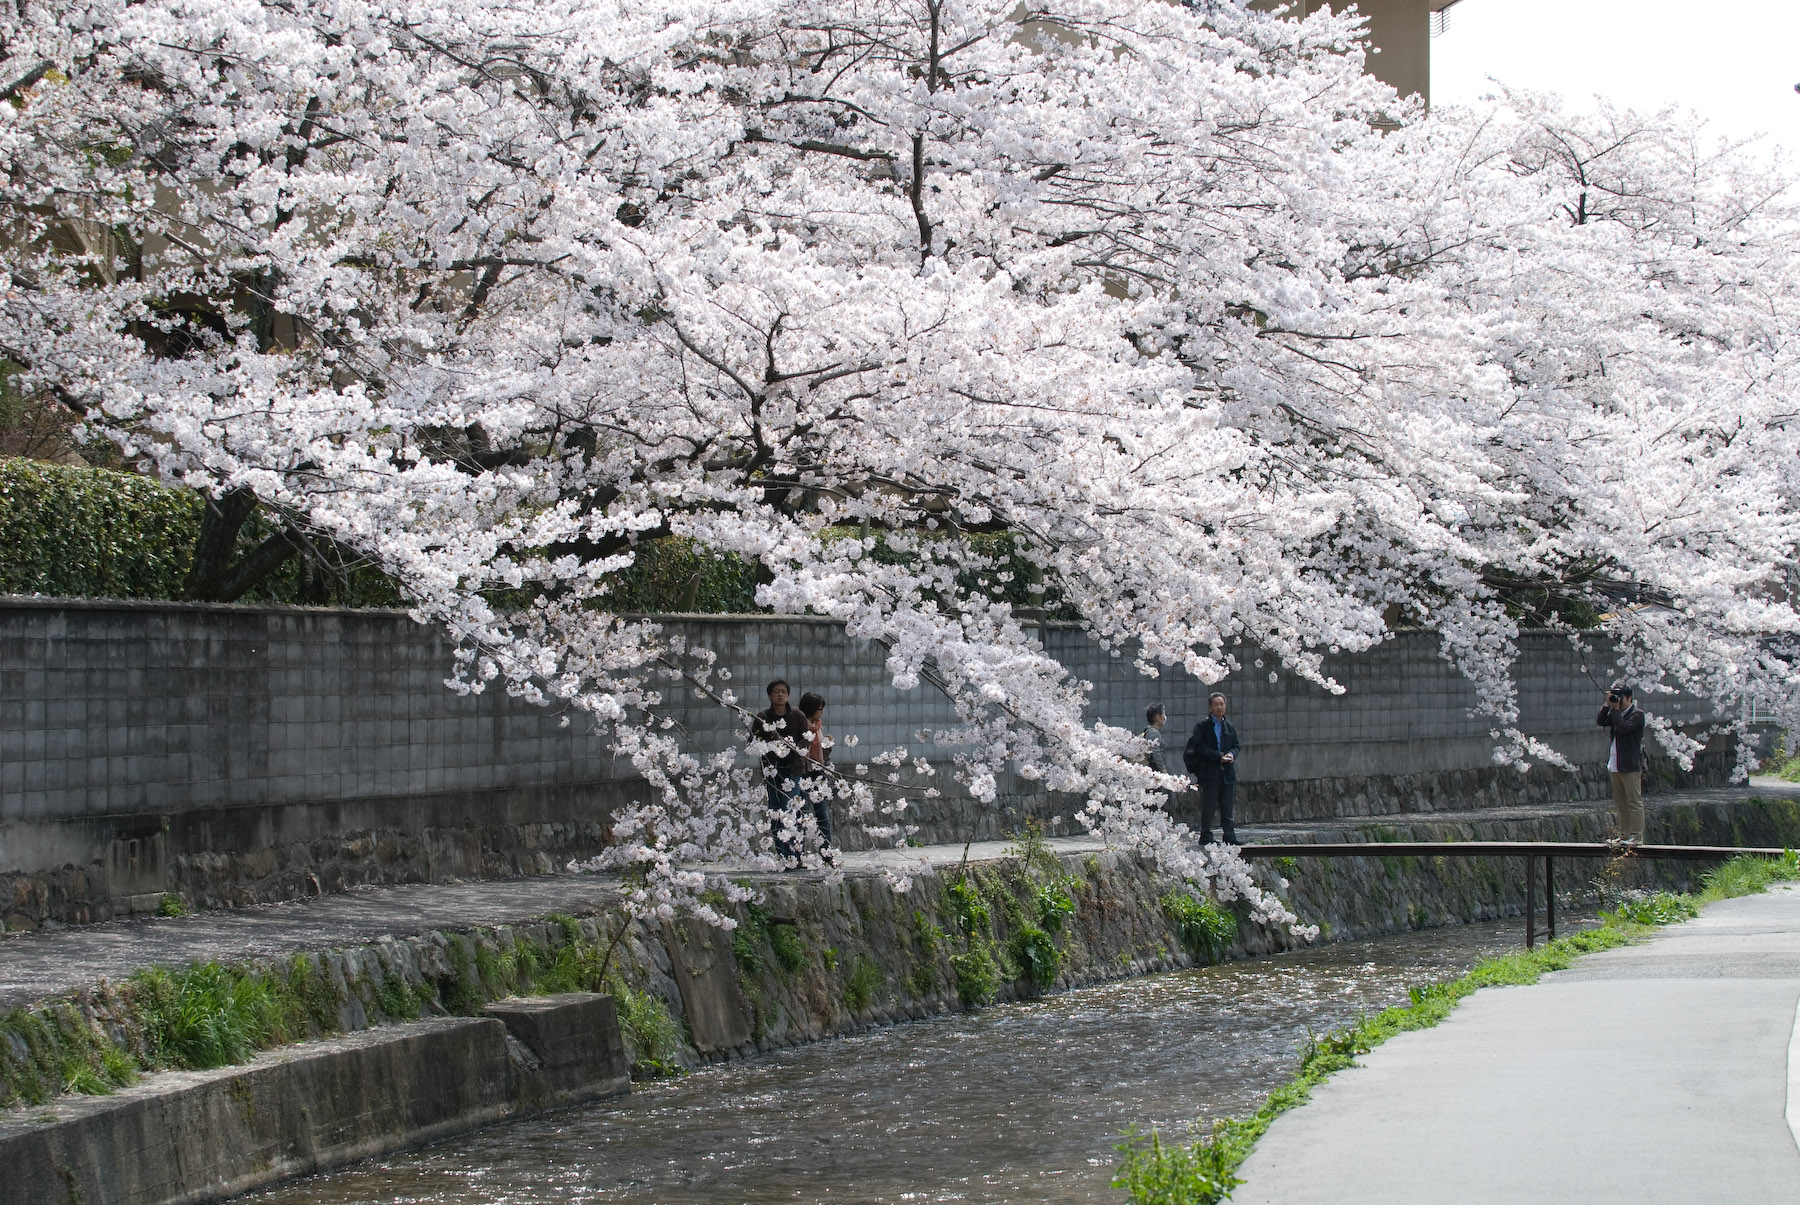 Kyoto Photo Trees Heavy With Cherry Blossoms In Northern